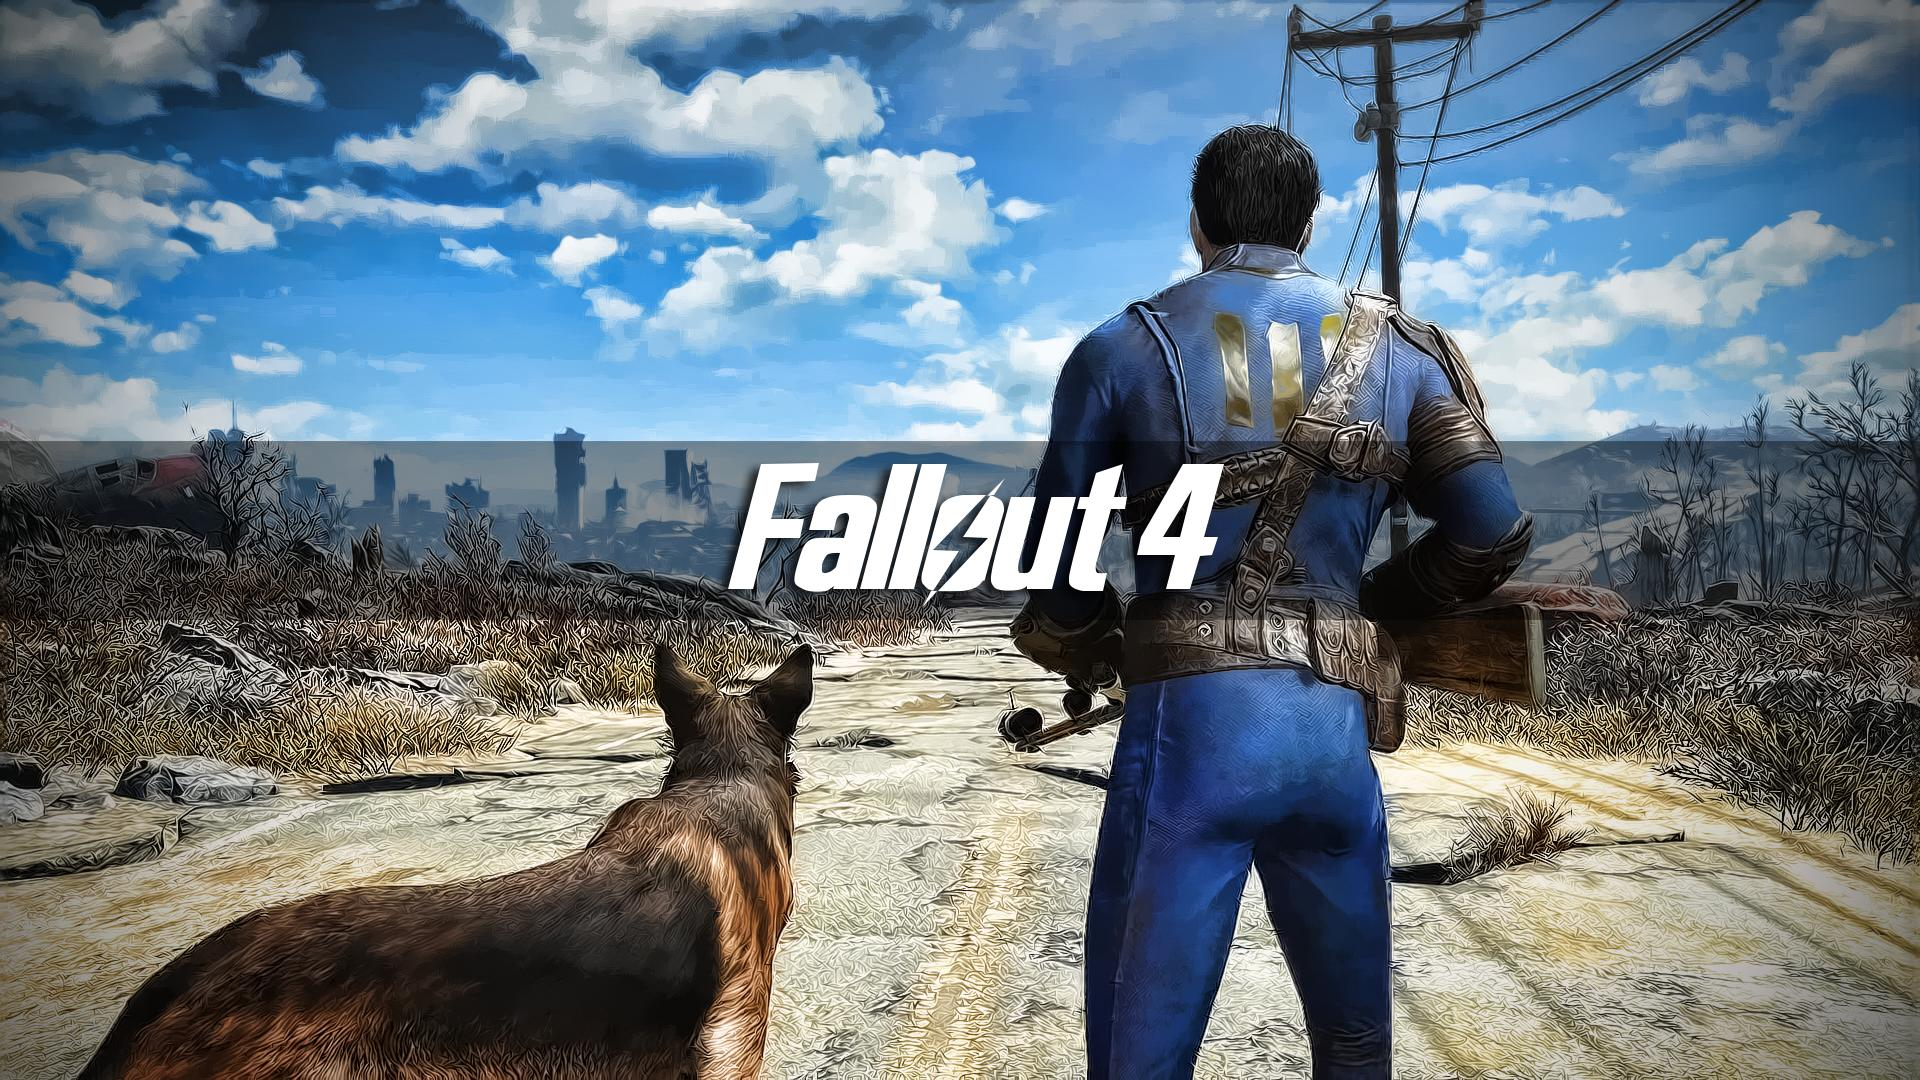 High Quality Fallout 4 Wallpaper Full HD Pictures